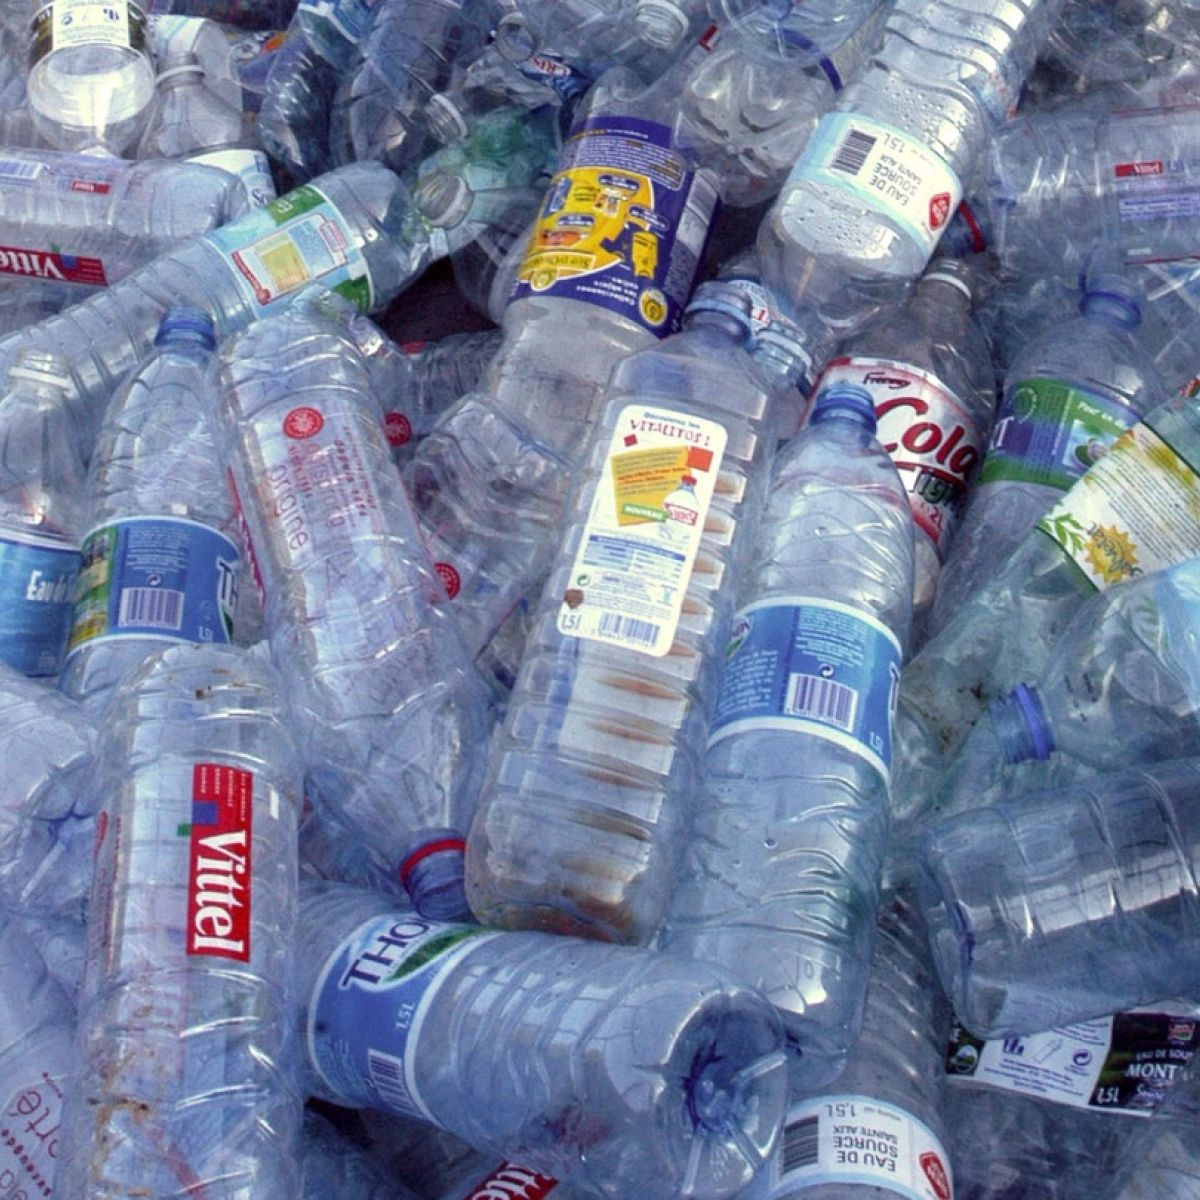 Plastic: how much do we generate and how can we reduce it?